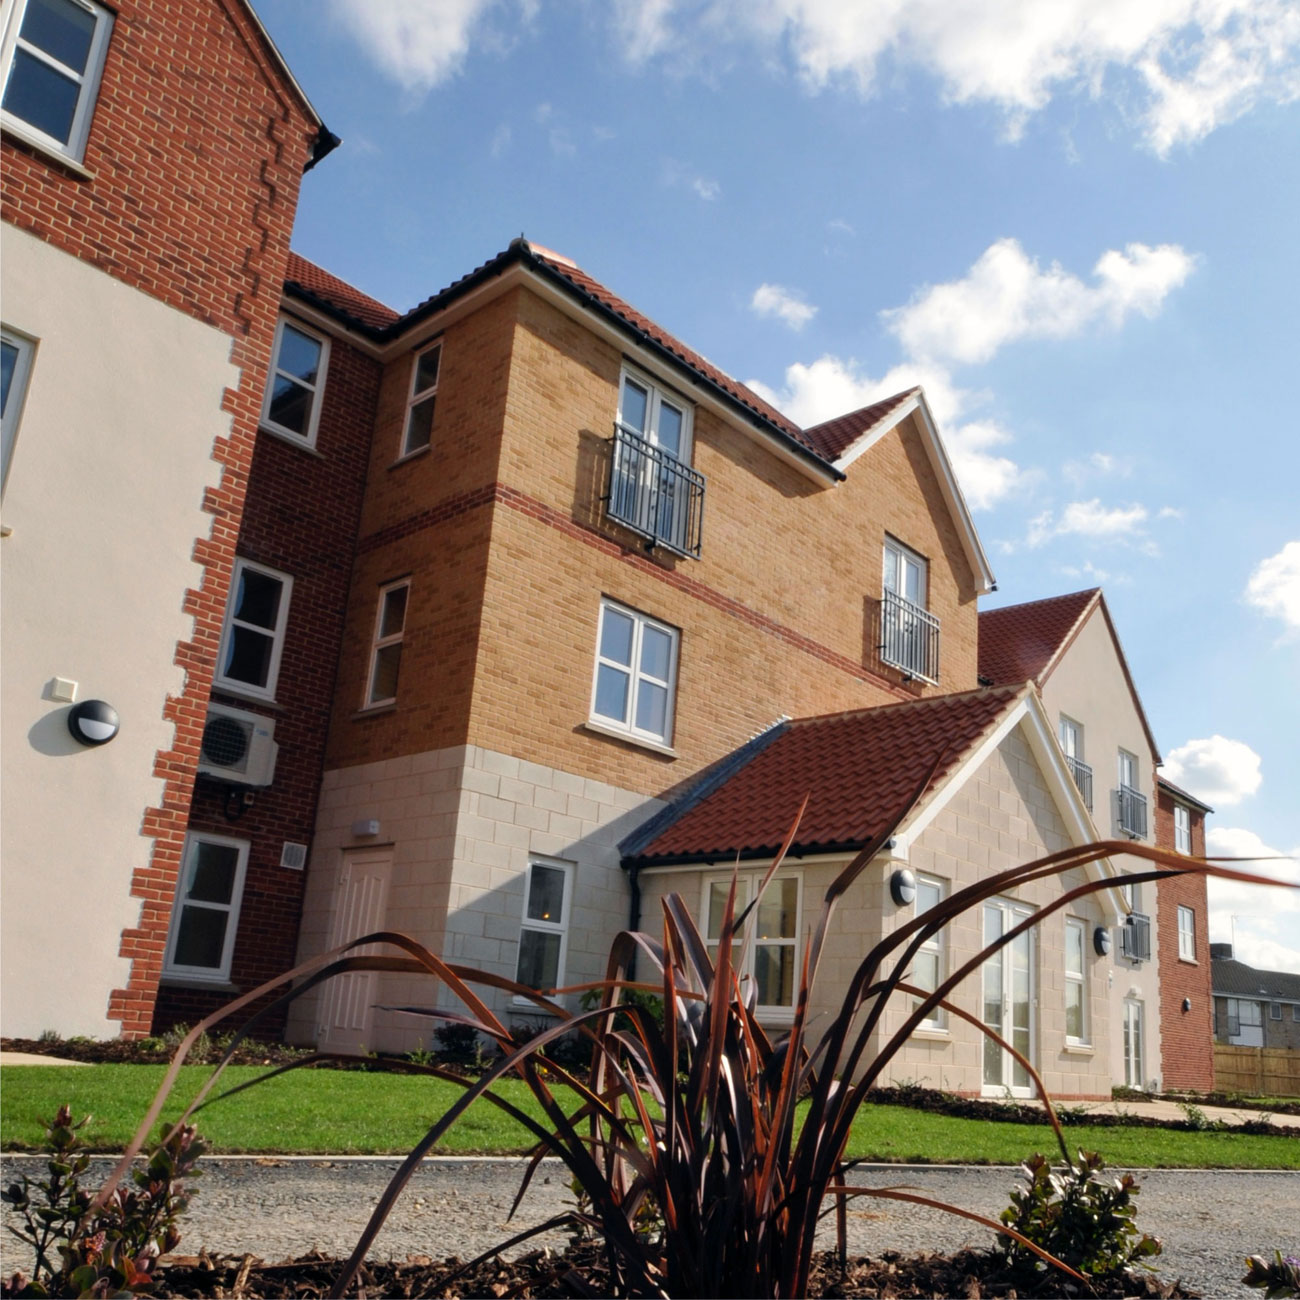 The_Grange_Romford_Care_Home1